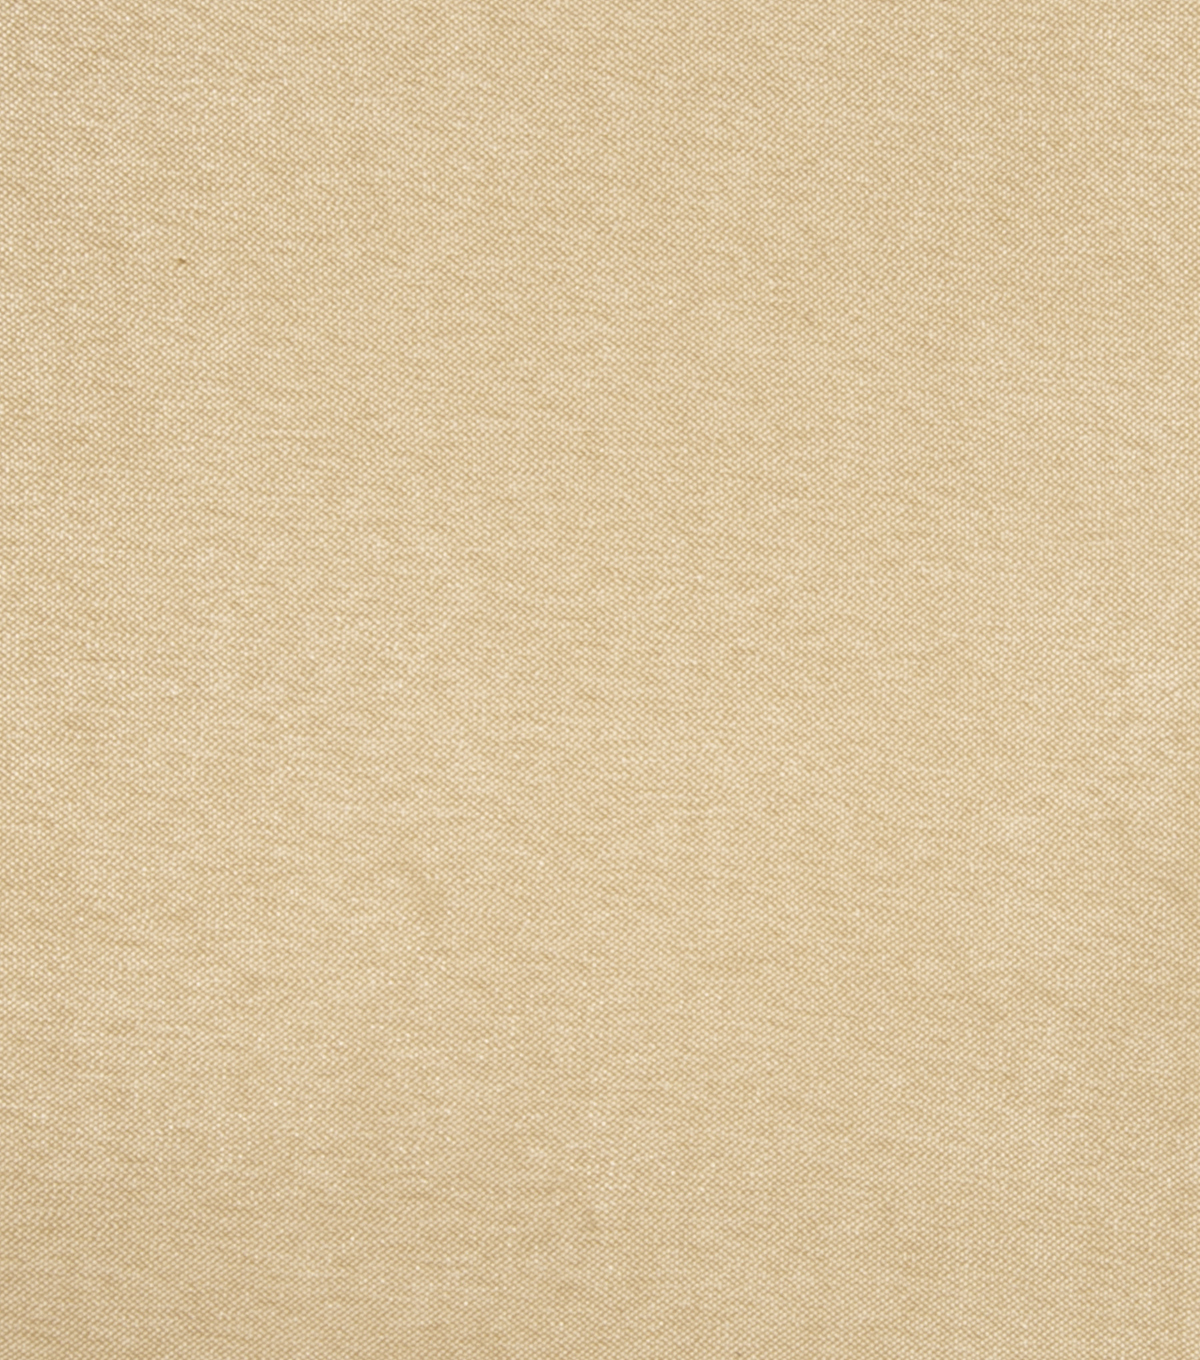 Home Decor 8\u0022x8\u0022 Fabric Swatch-Jaclyn Smith Cobblestone Boucle Natural